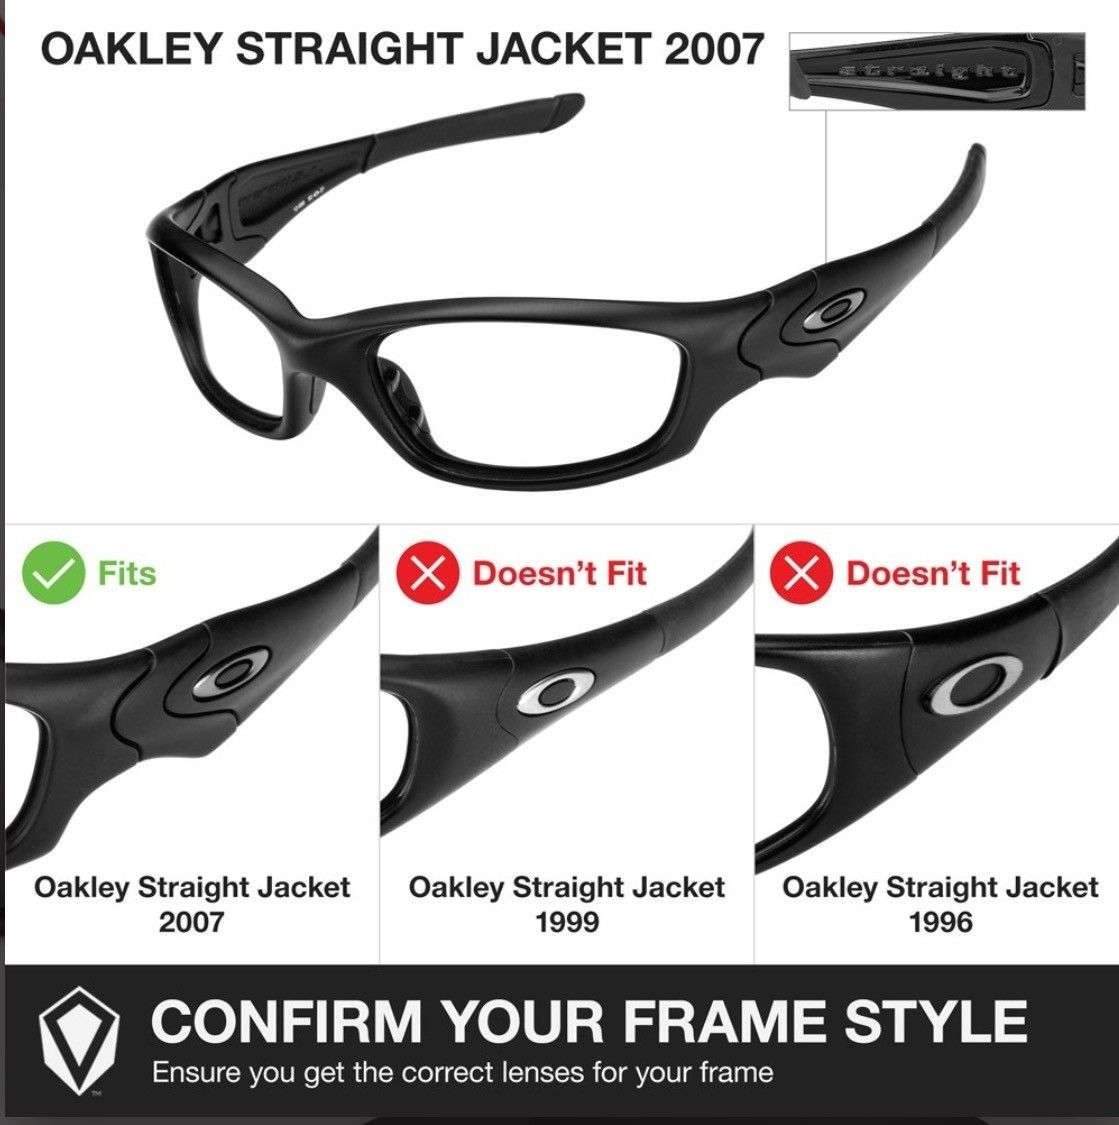 Straight Jacket - Pre 07 and Post 07? - image.jpeg